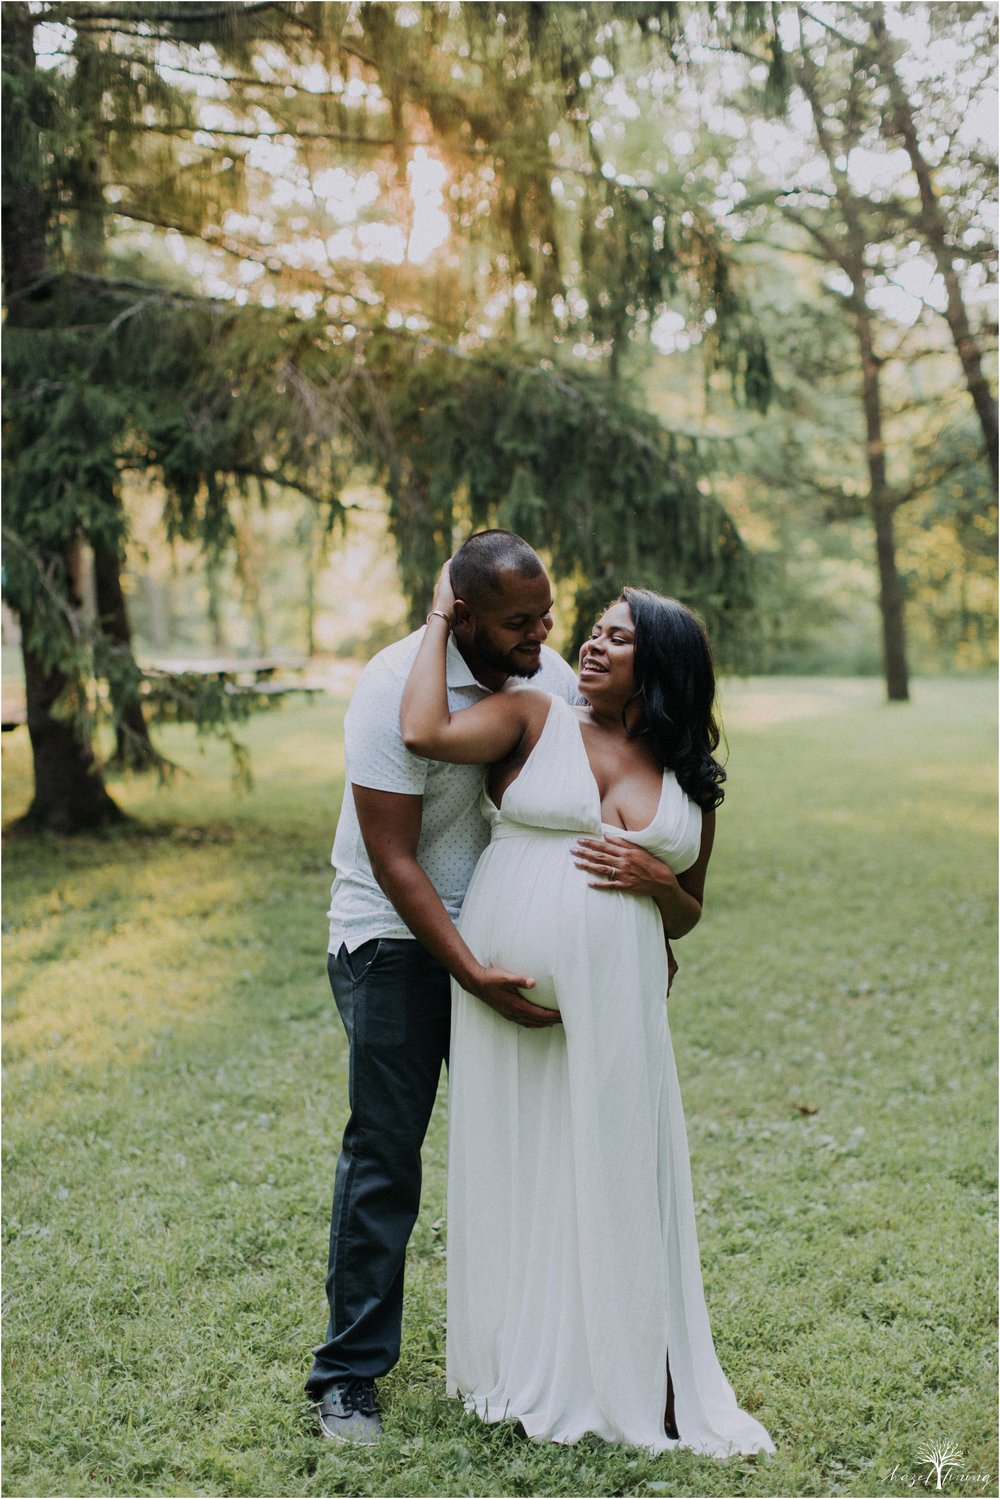 leyka-kristofer-chaparro-ralph-stover-state-park-summer-golden-hour-stream-maternity-session-hazel-lining-travel-wedding-elopement-photography_0032.jpg